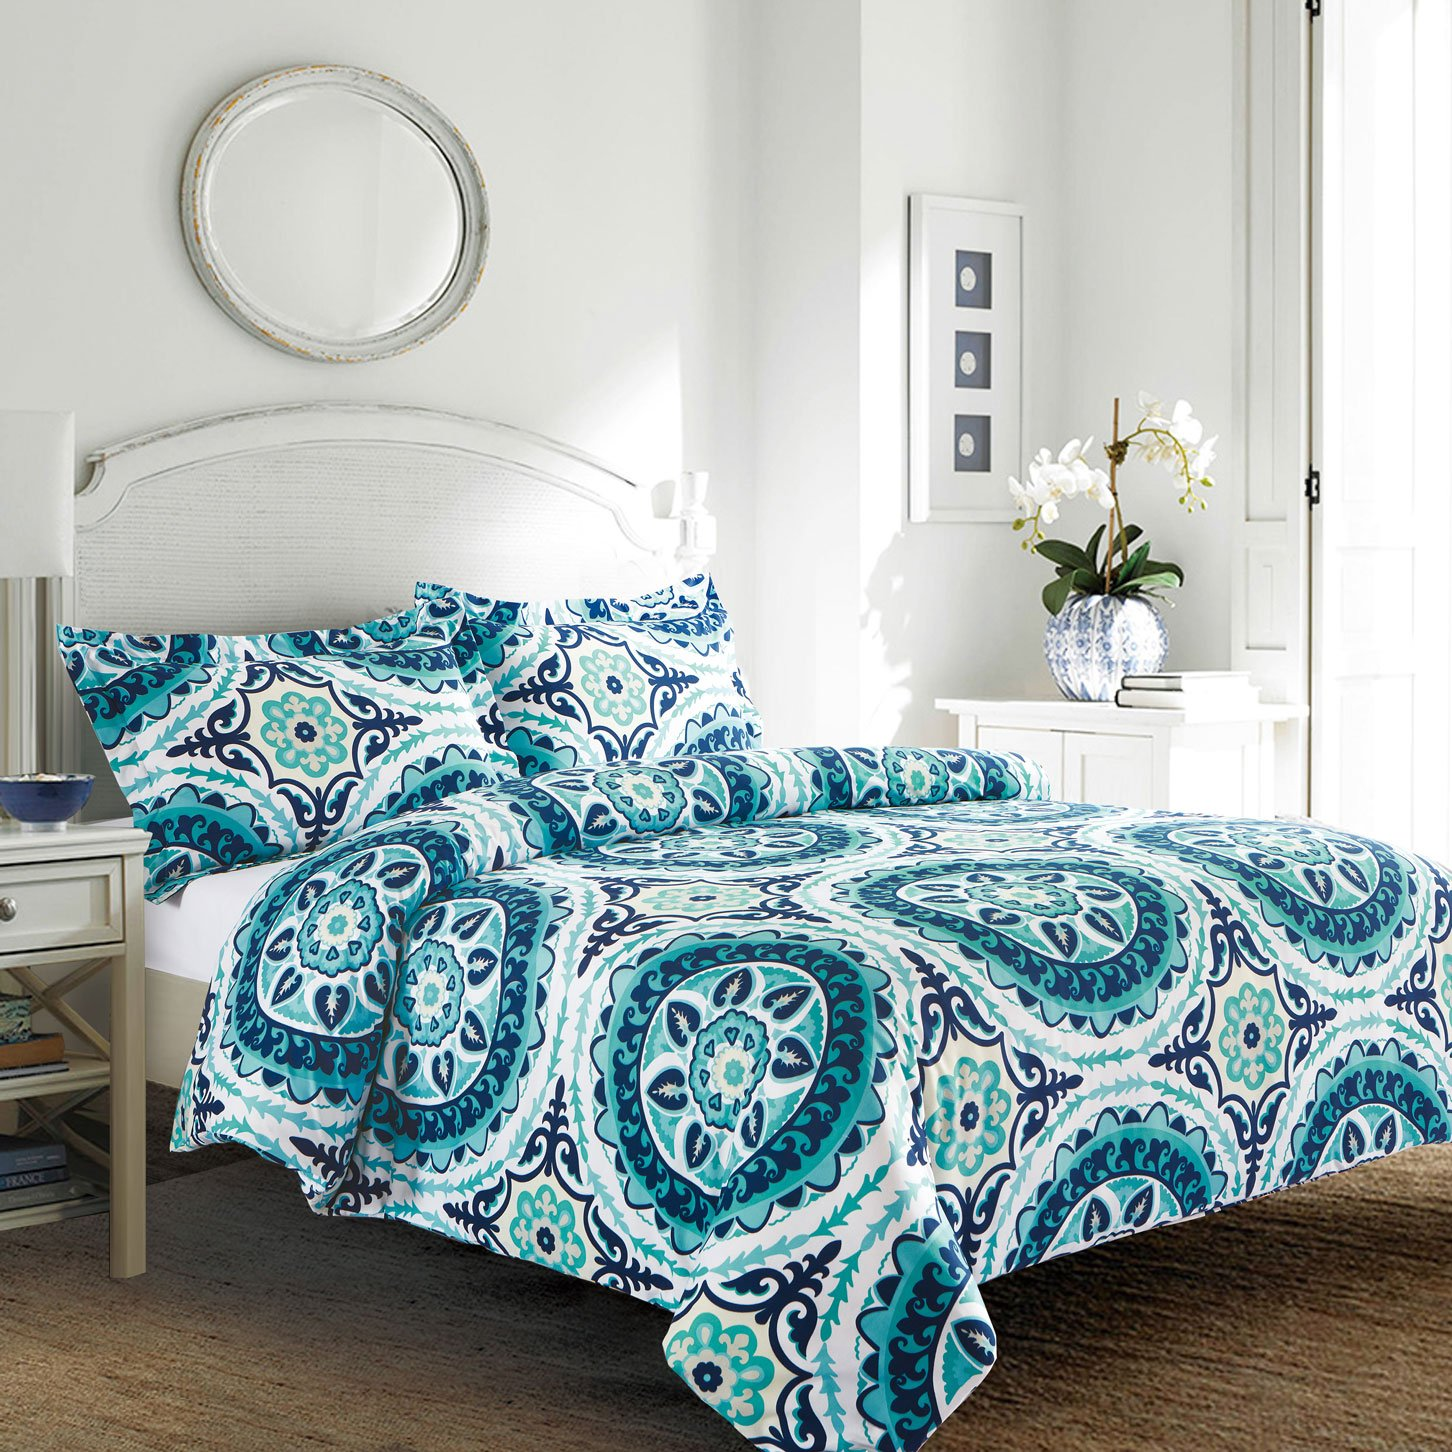 pin white bedding reversible quilt gold hallways cover teal green daisy double set duvet floral adele elton